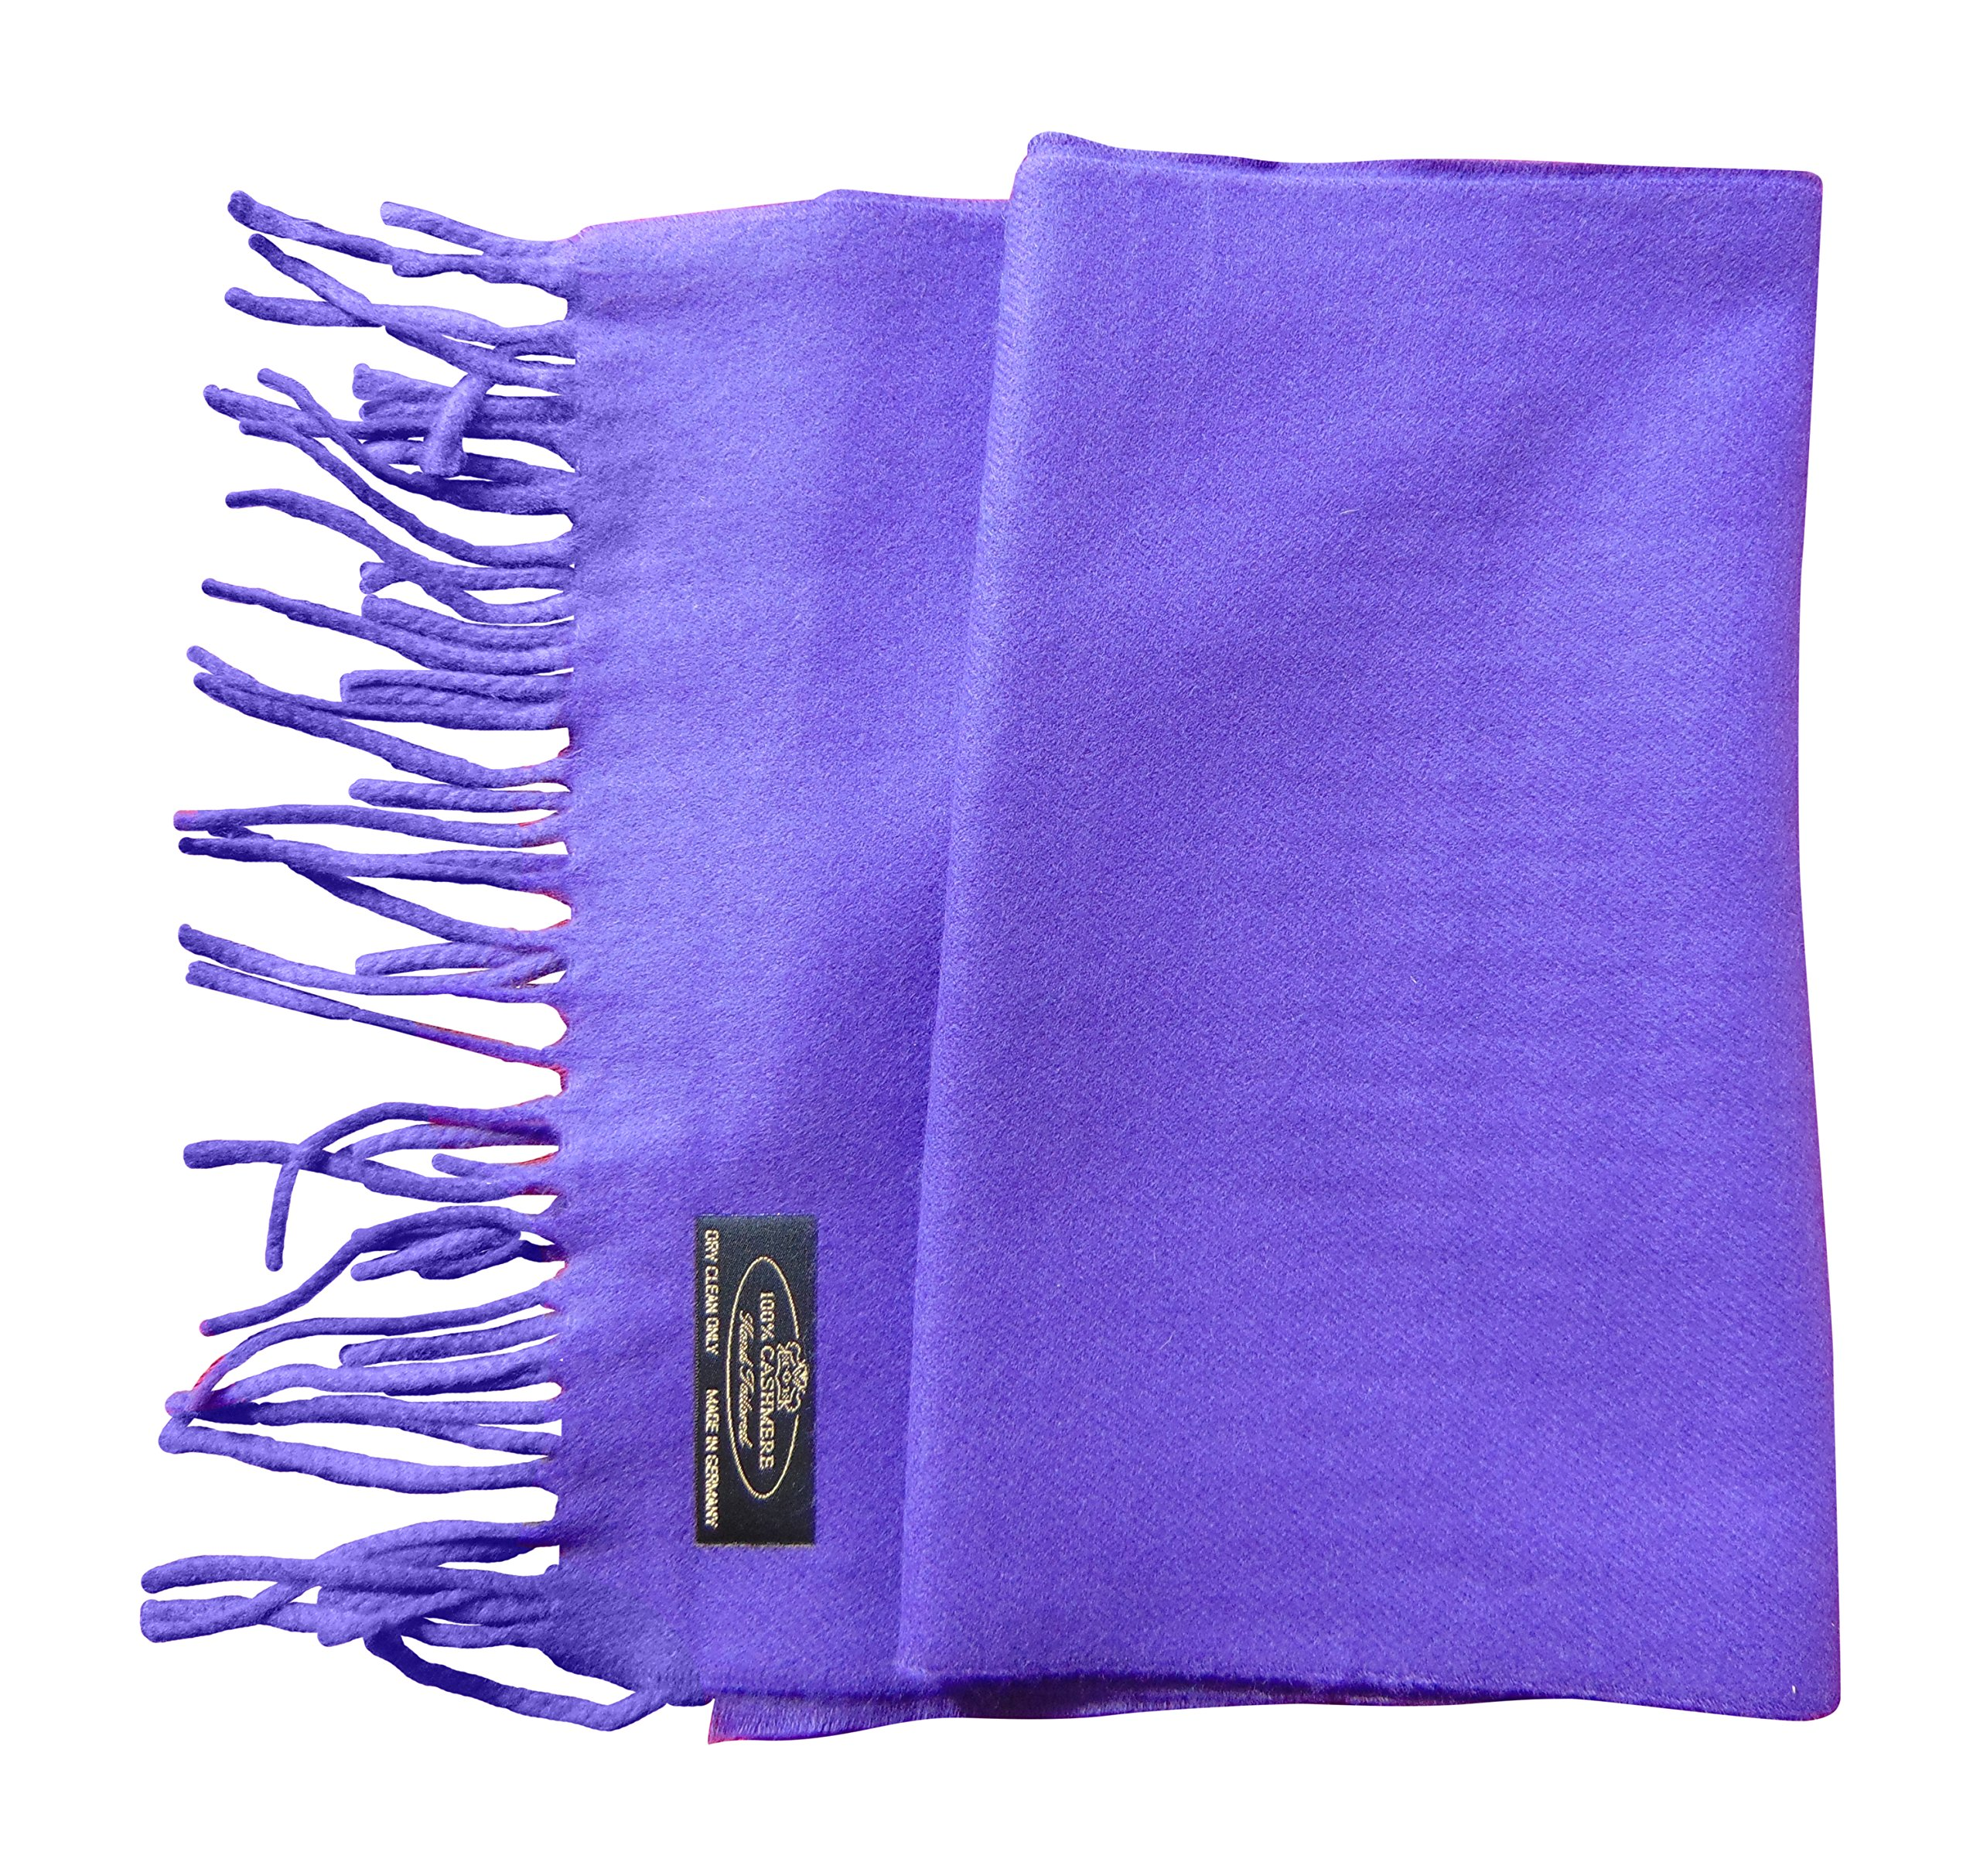 Annys Super Soft 100% Cashmere Scarf 12 X 72 with Gift Bag (Purple)